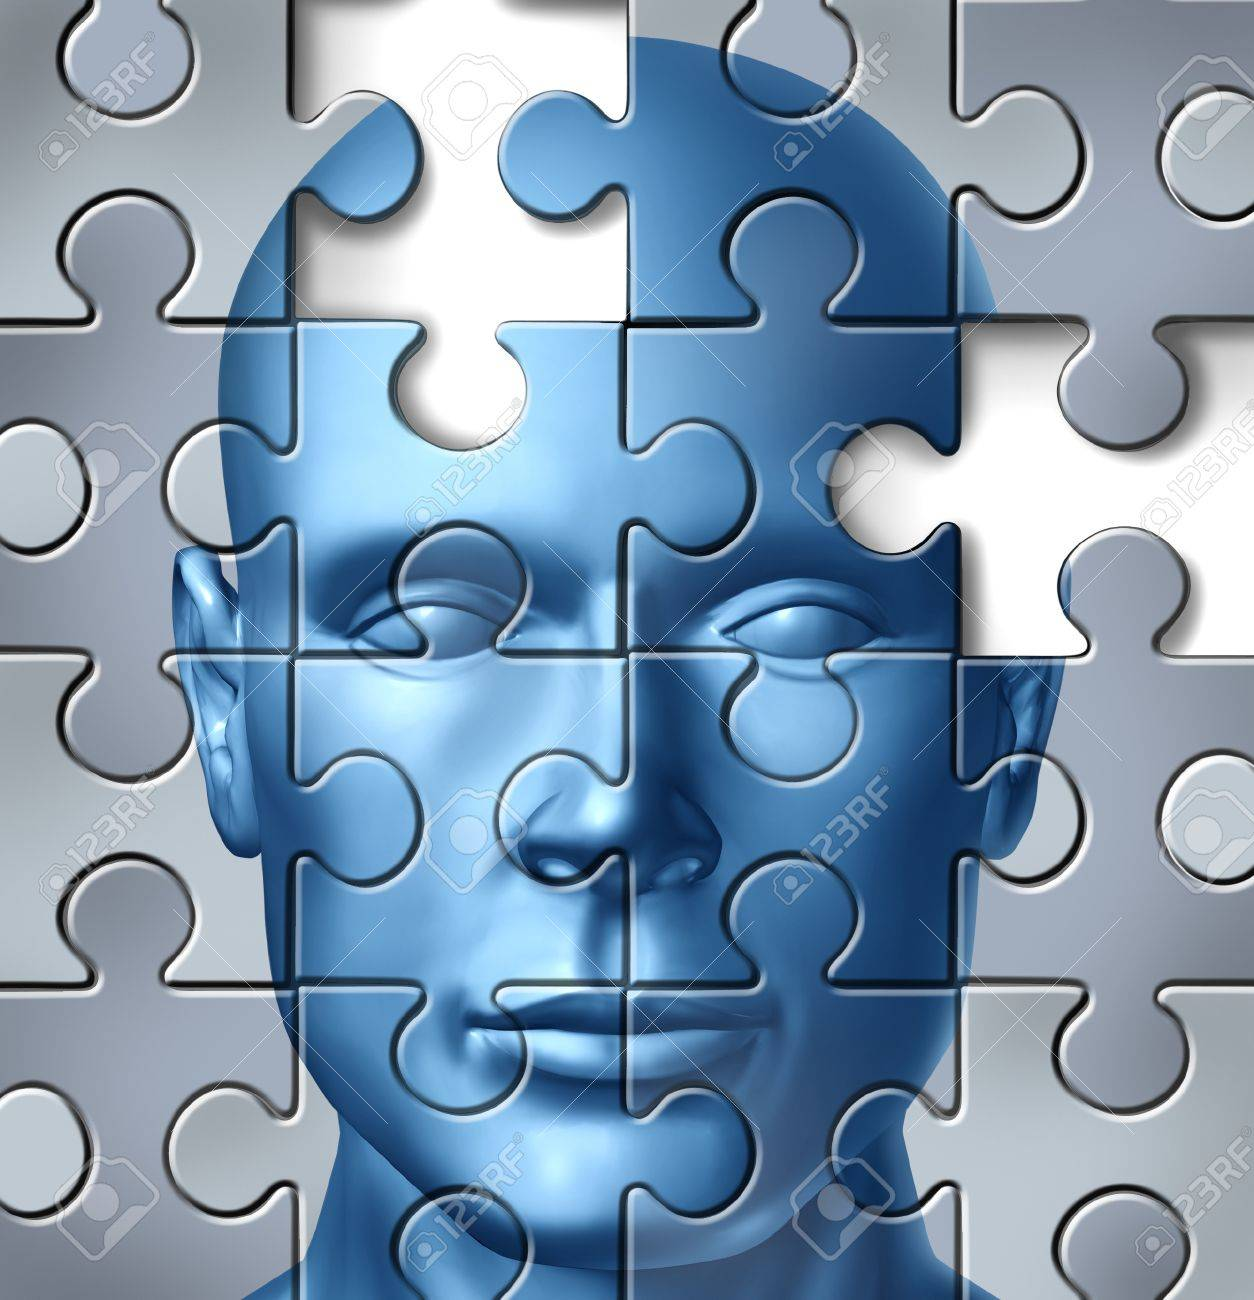 Human brain research and memory loss and alzheimer Stock Photo - 11935367